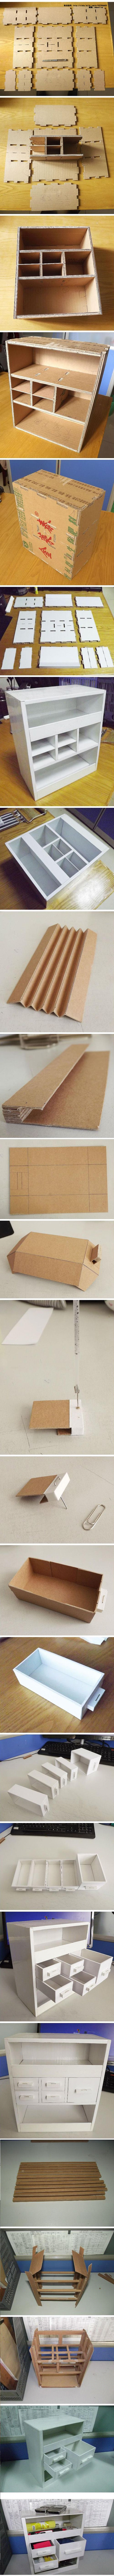 Awesome desk storage box diy